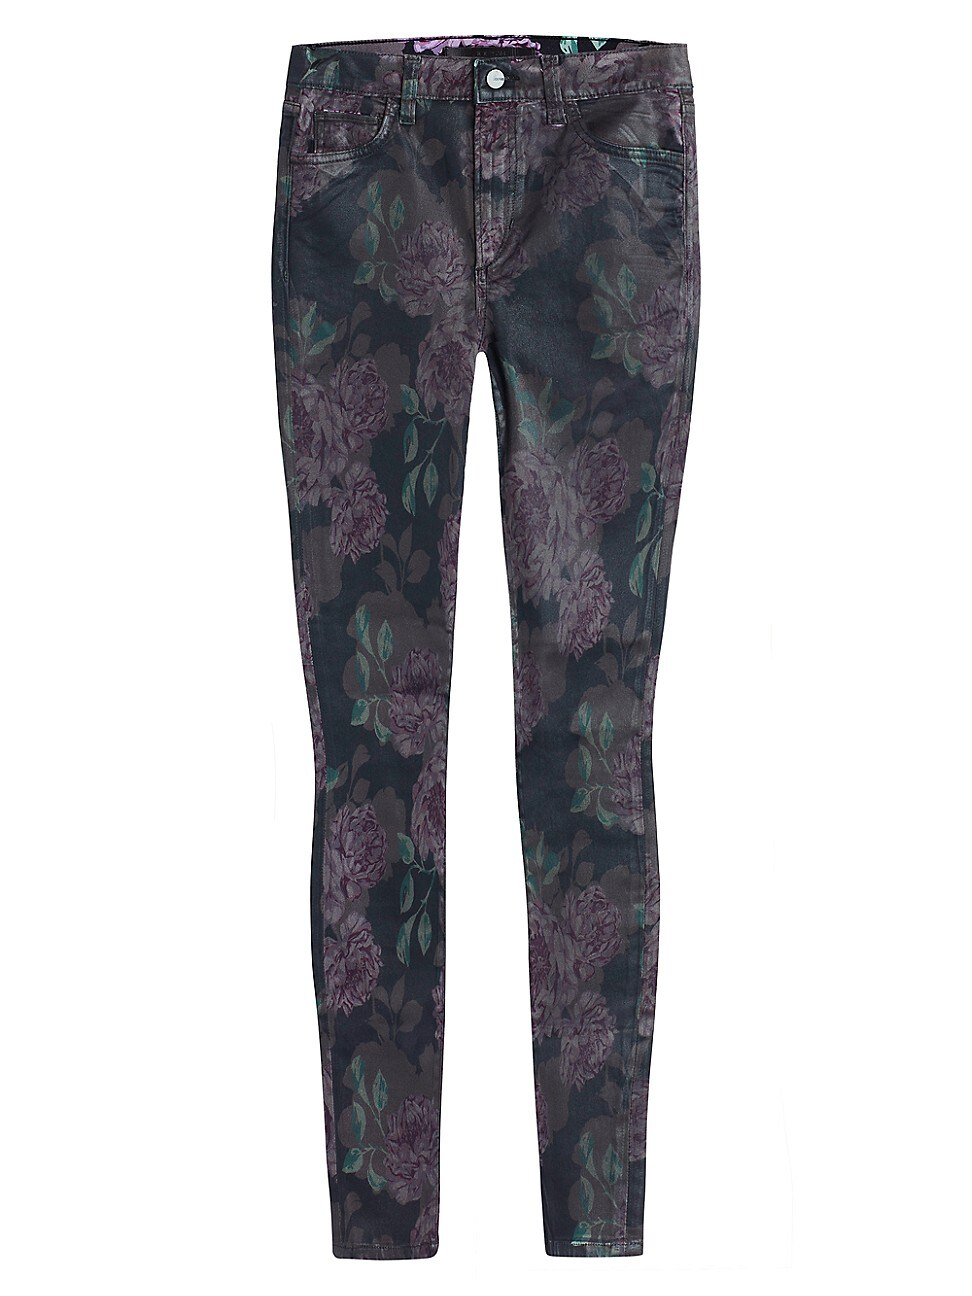 Joe's Jeans WOMEN'S CHARLIE HIGH-RISE COATED FLORAL SKINNY JEANS